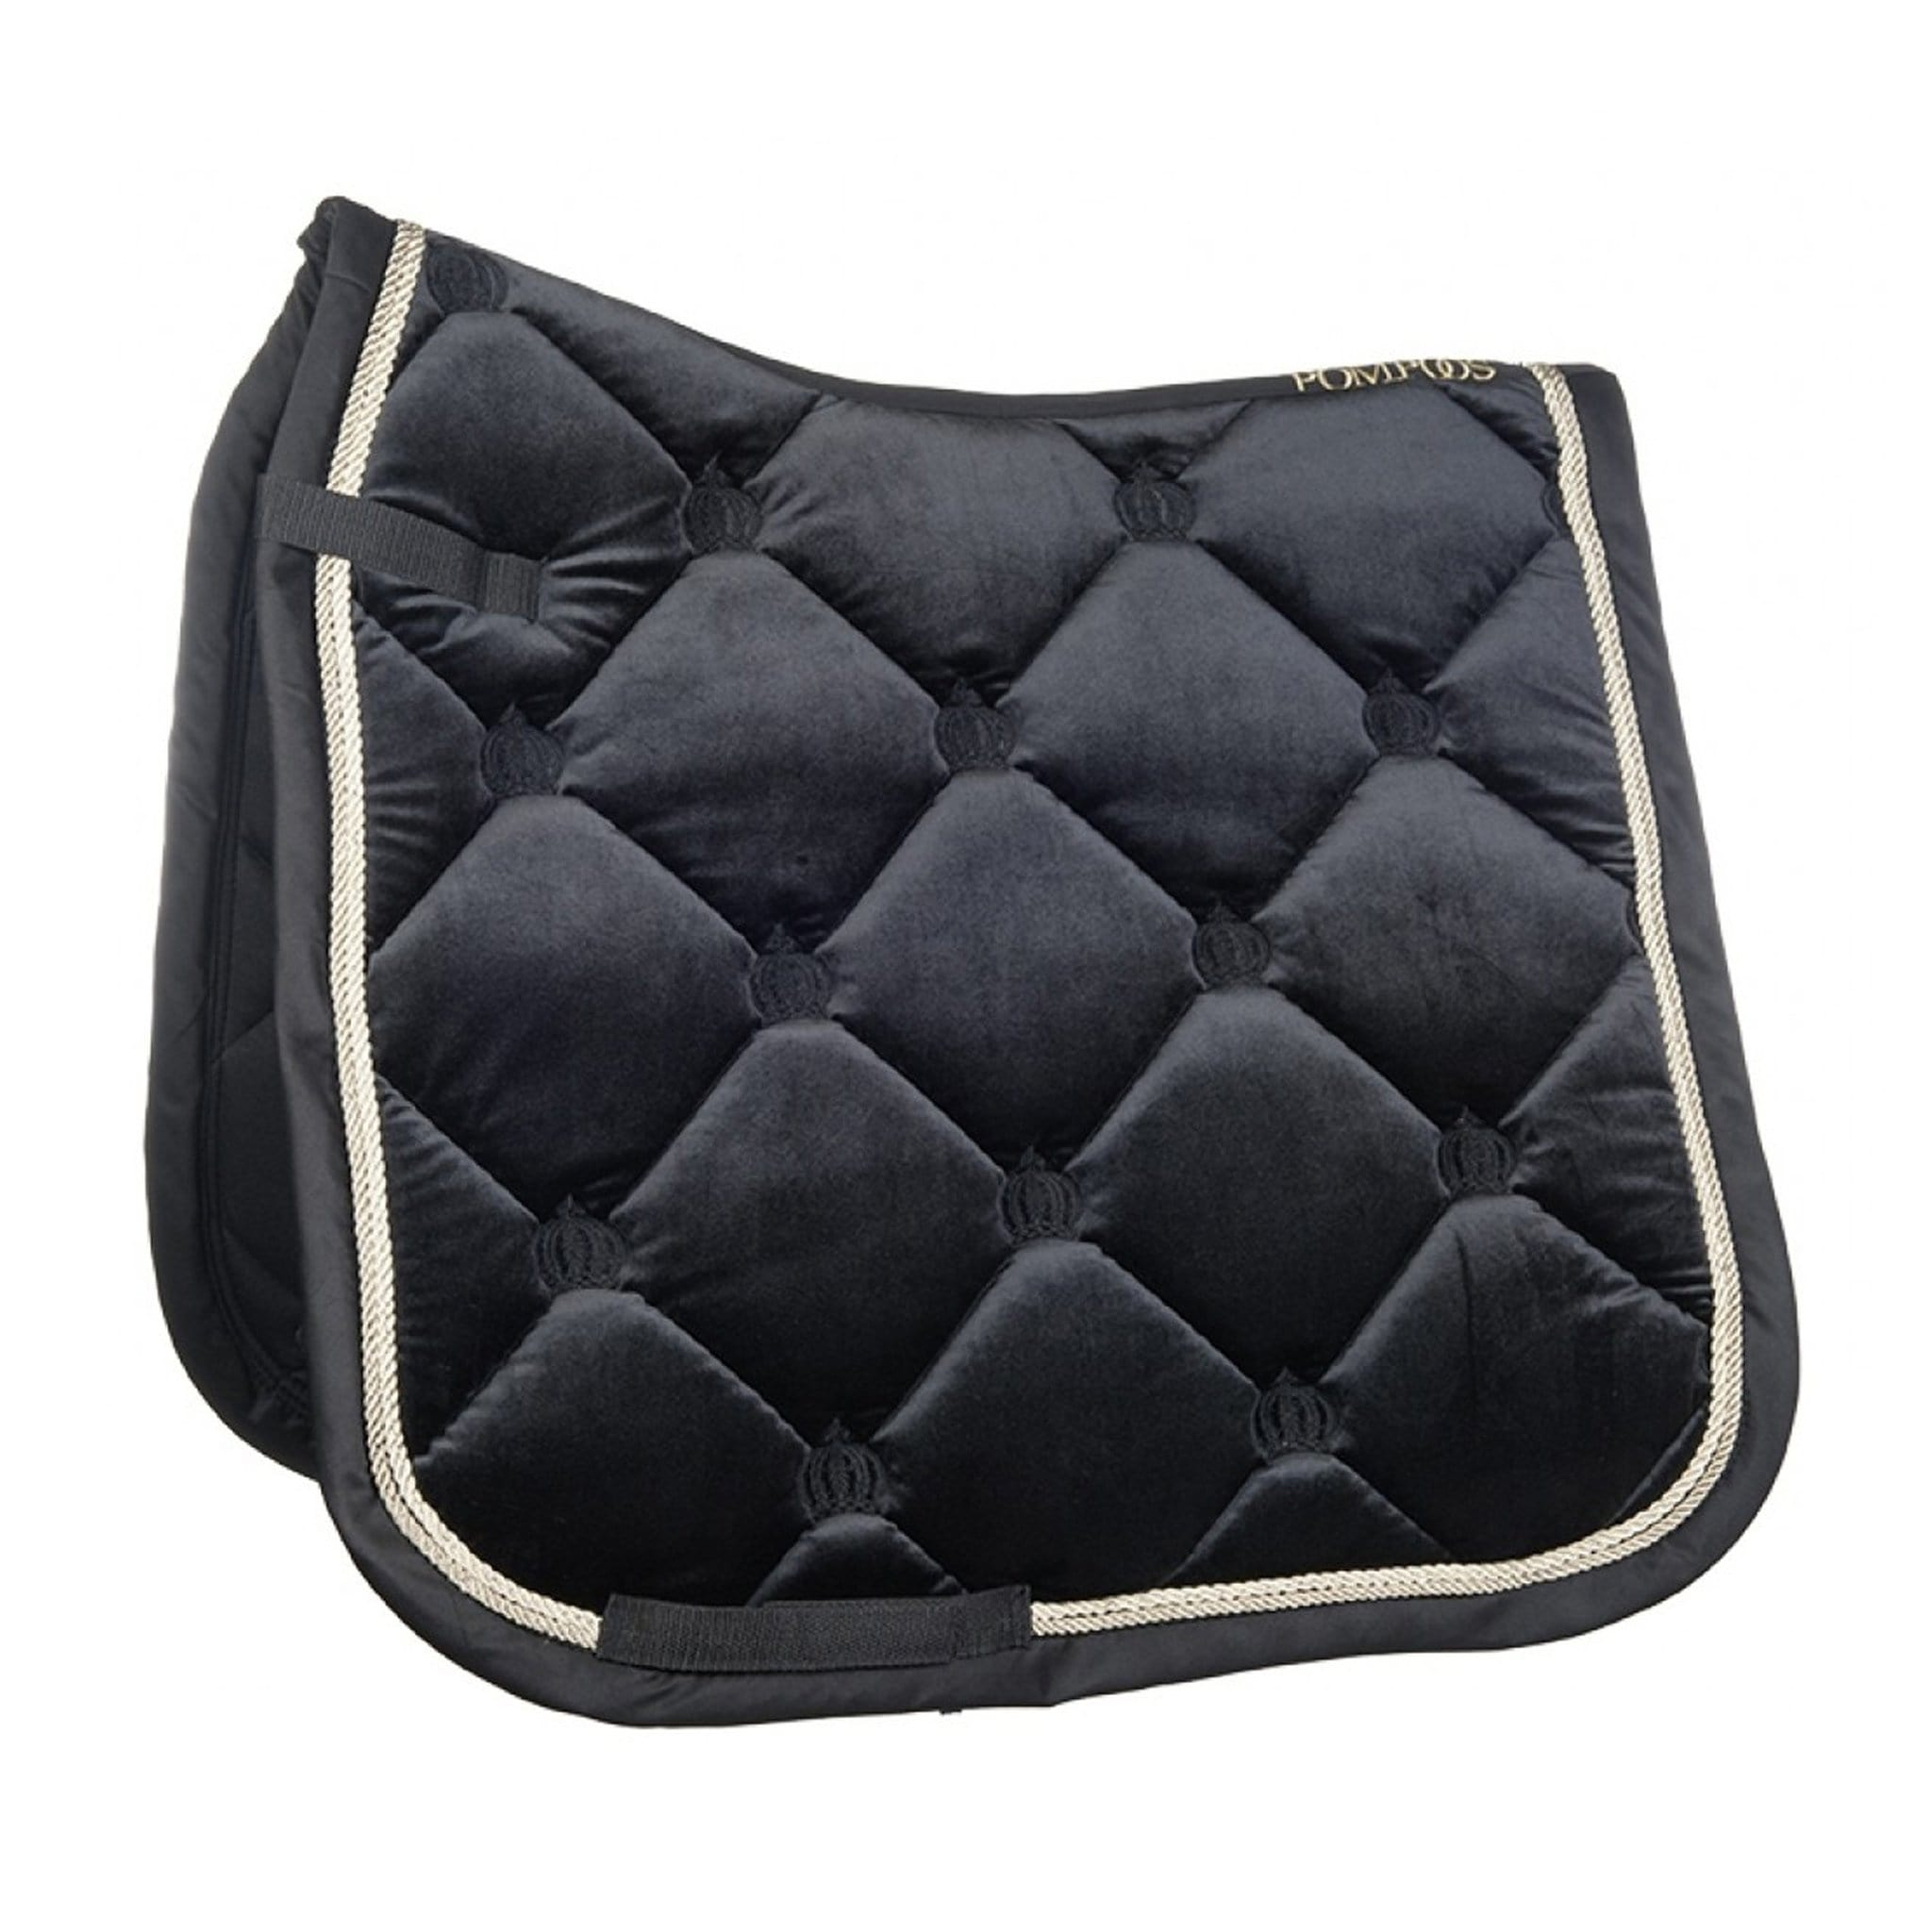 HKM Glööckler Pompöös Goldenline Velvet Saddle Cloth 11426